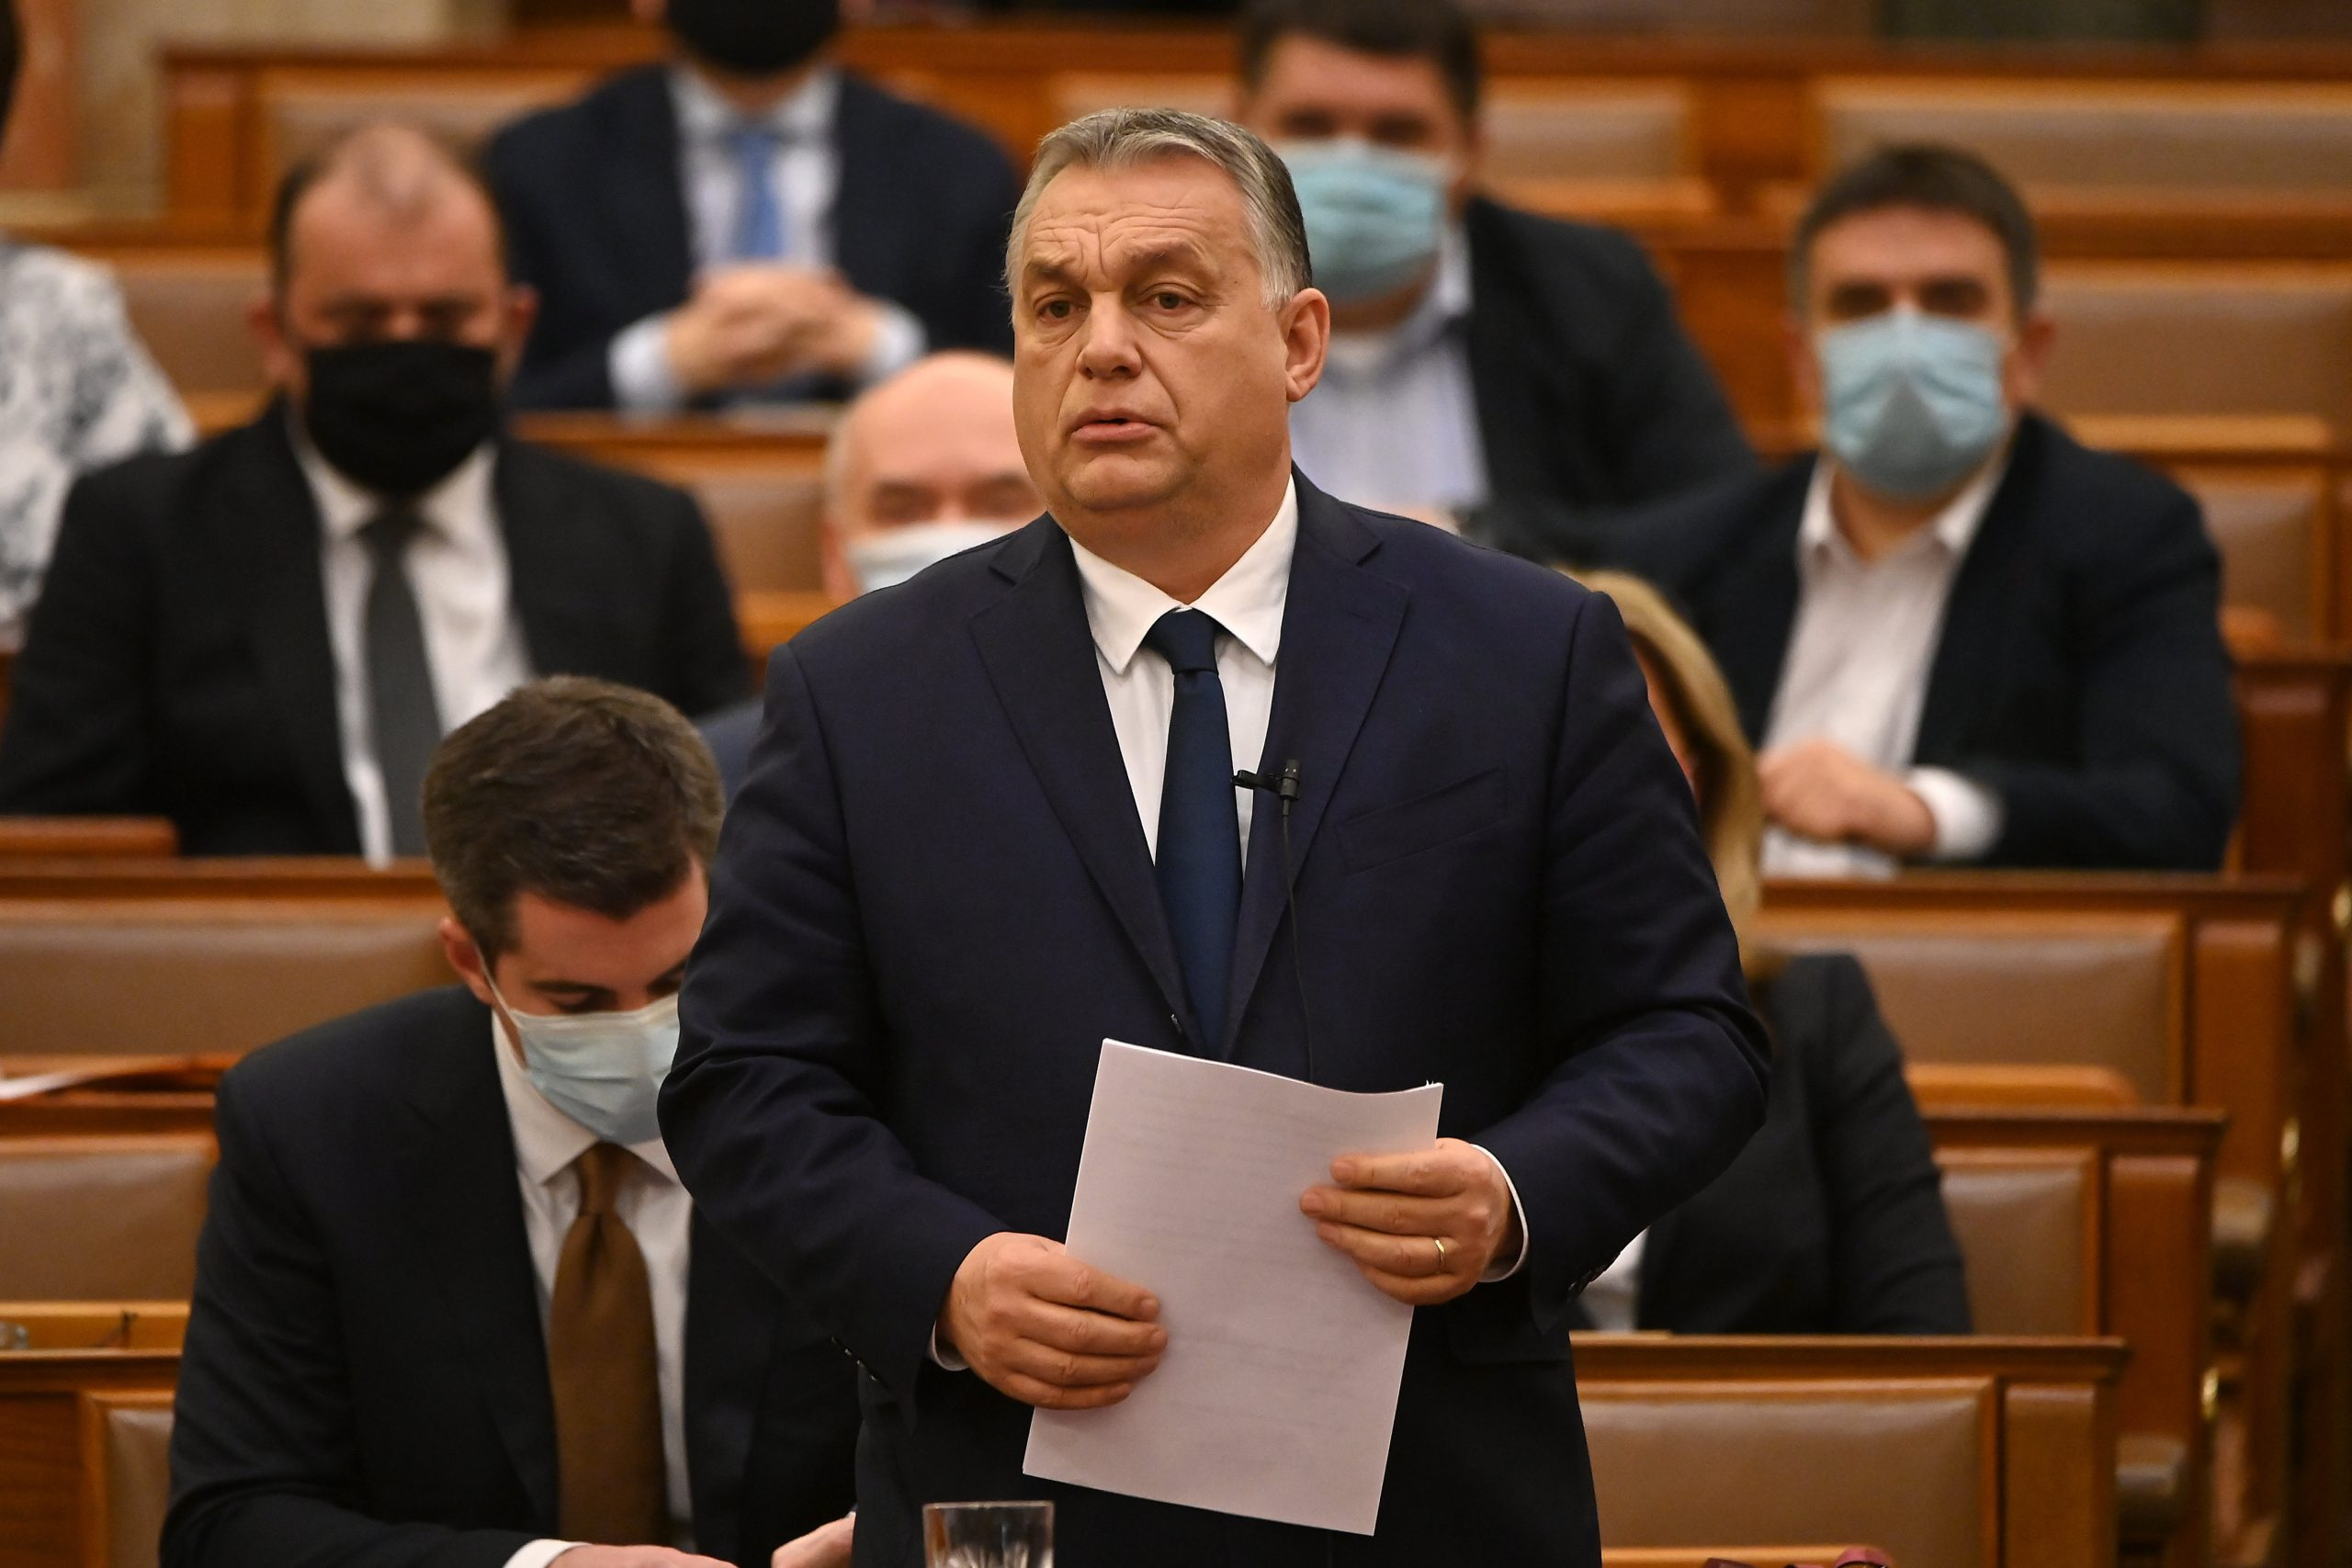 PM Orbán: Gov't Not Responsible for Spread of Coronavirus